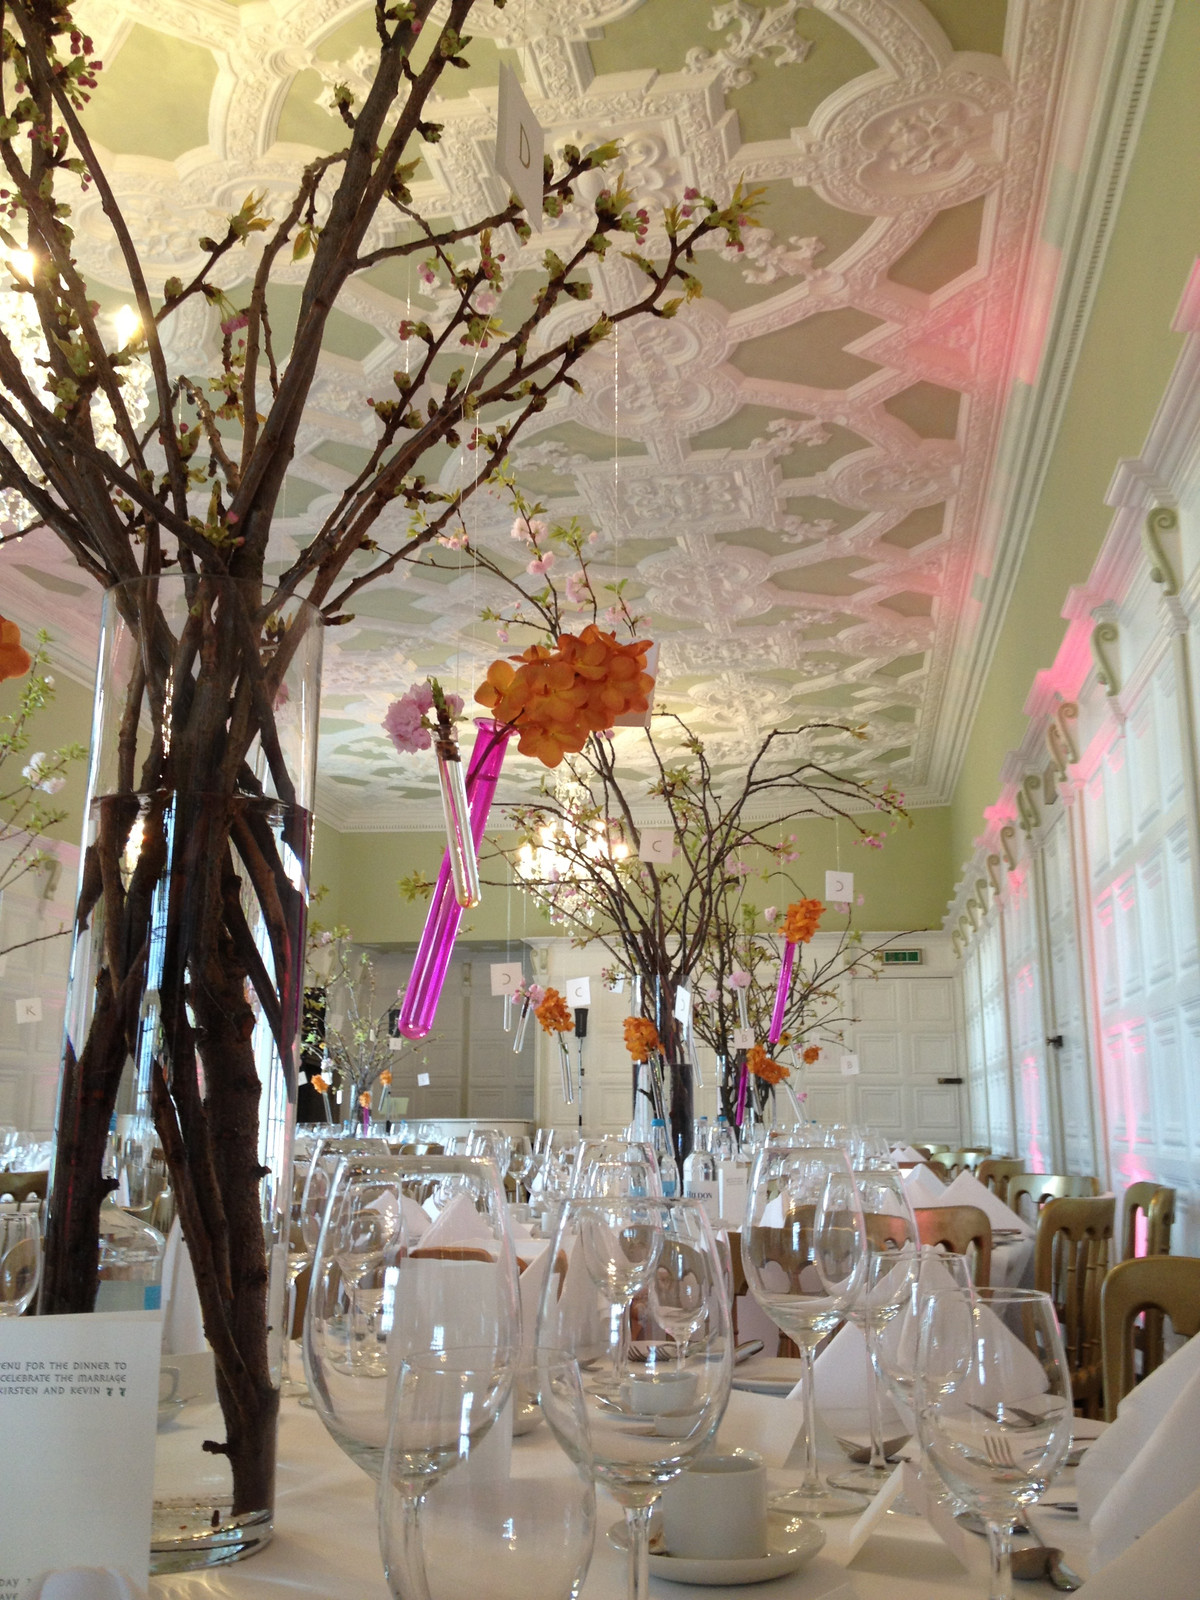 Hanging designs work well in large areas. this was our first wedding under the brand Twig and looked amazing.